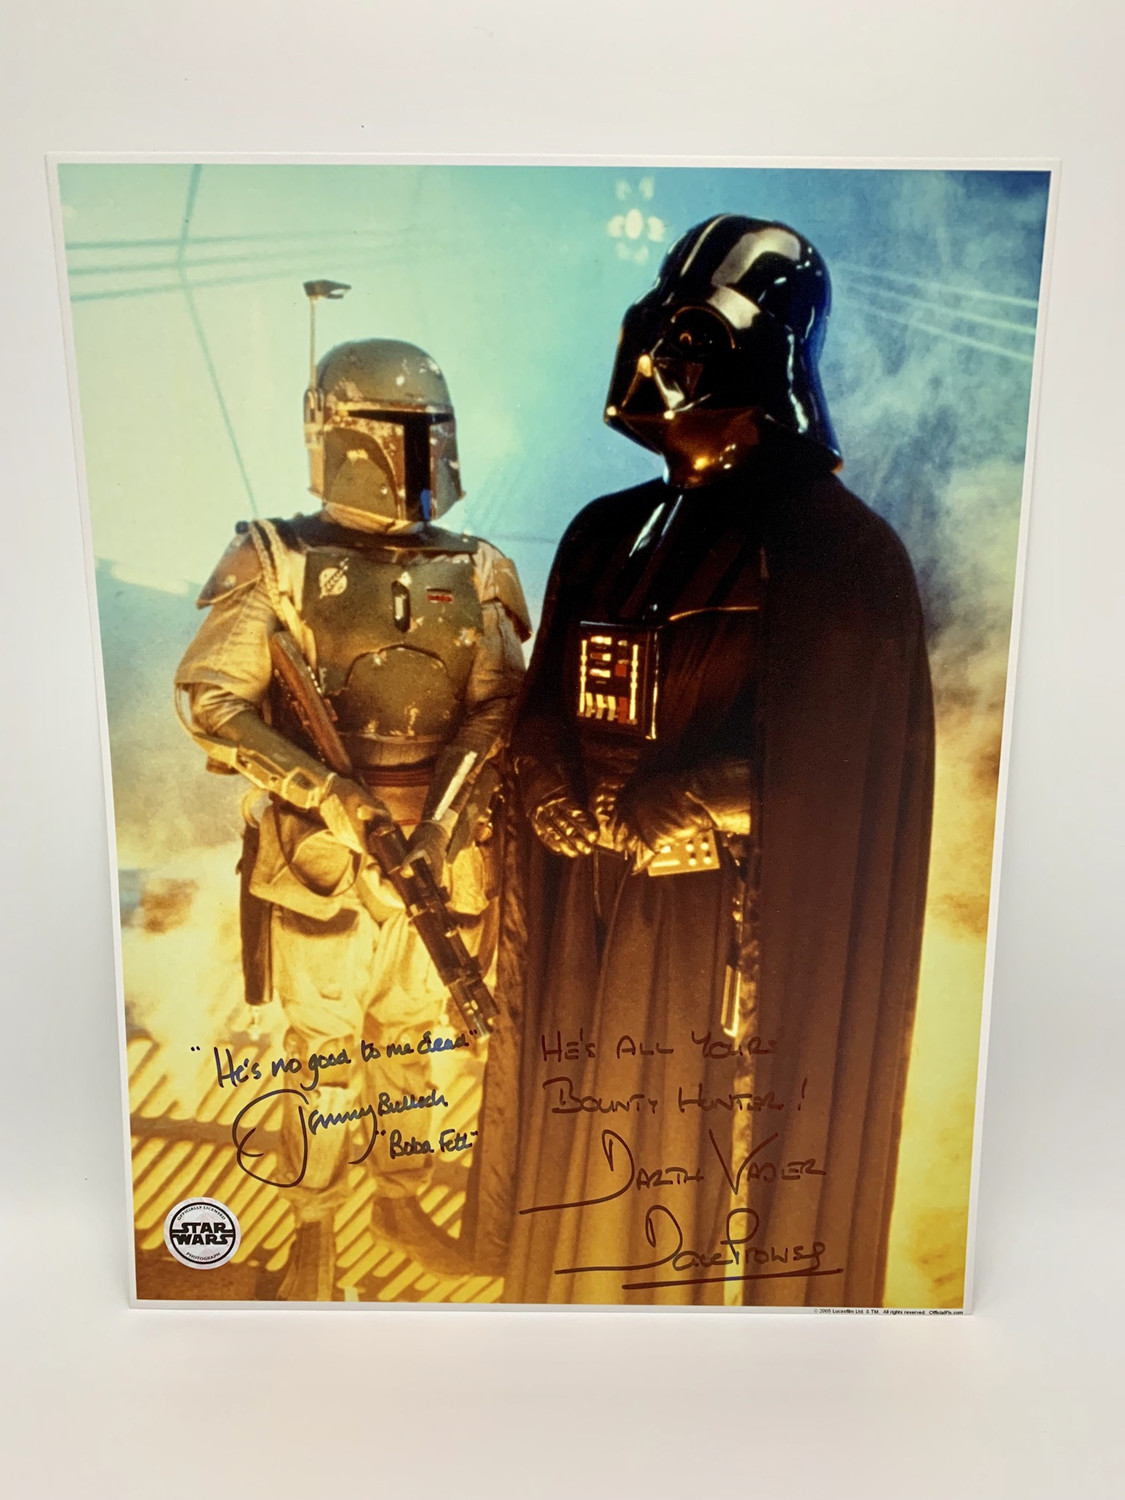 11X14 PHOTO SIGNED BY DAVE PROWSE AND JEREMY BULLOCH